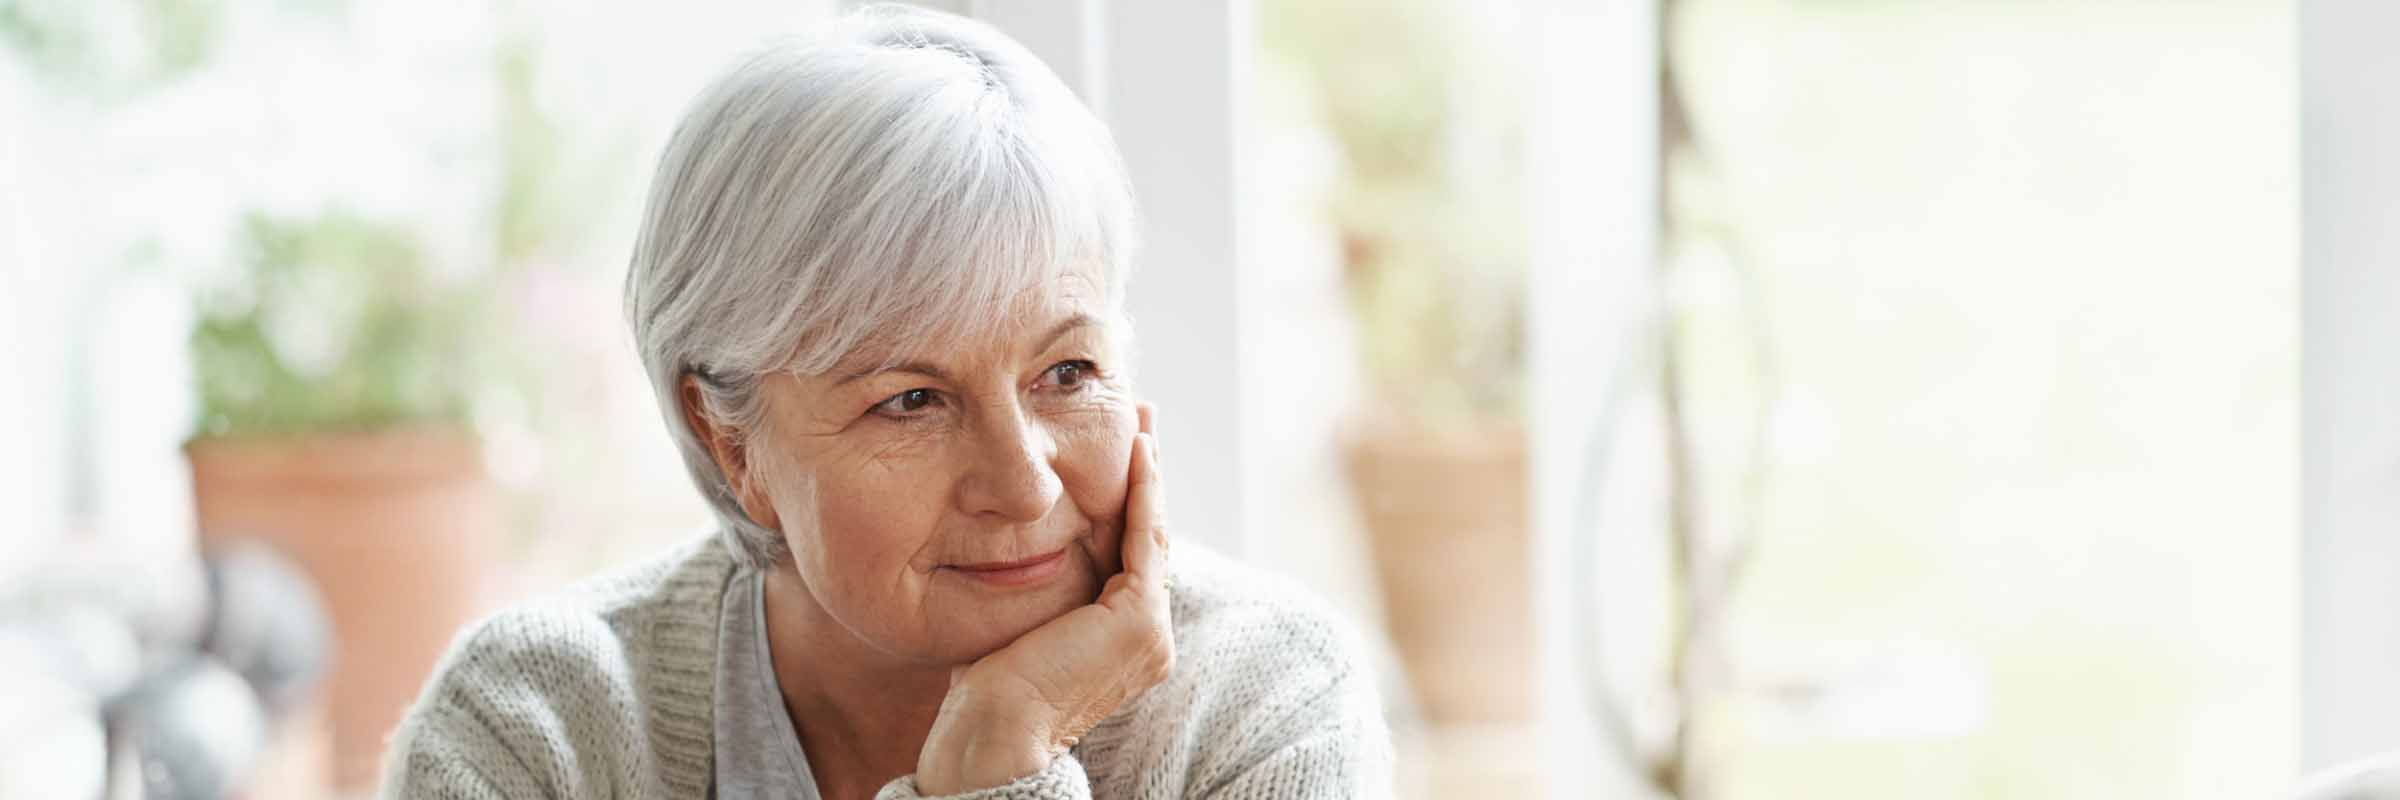 photo of a divorced or widowed woman | Flournoy Wealth Management